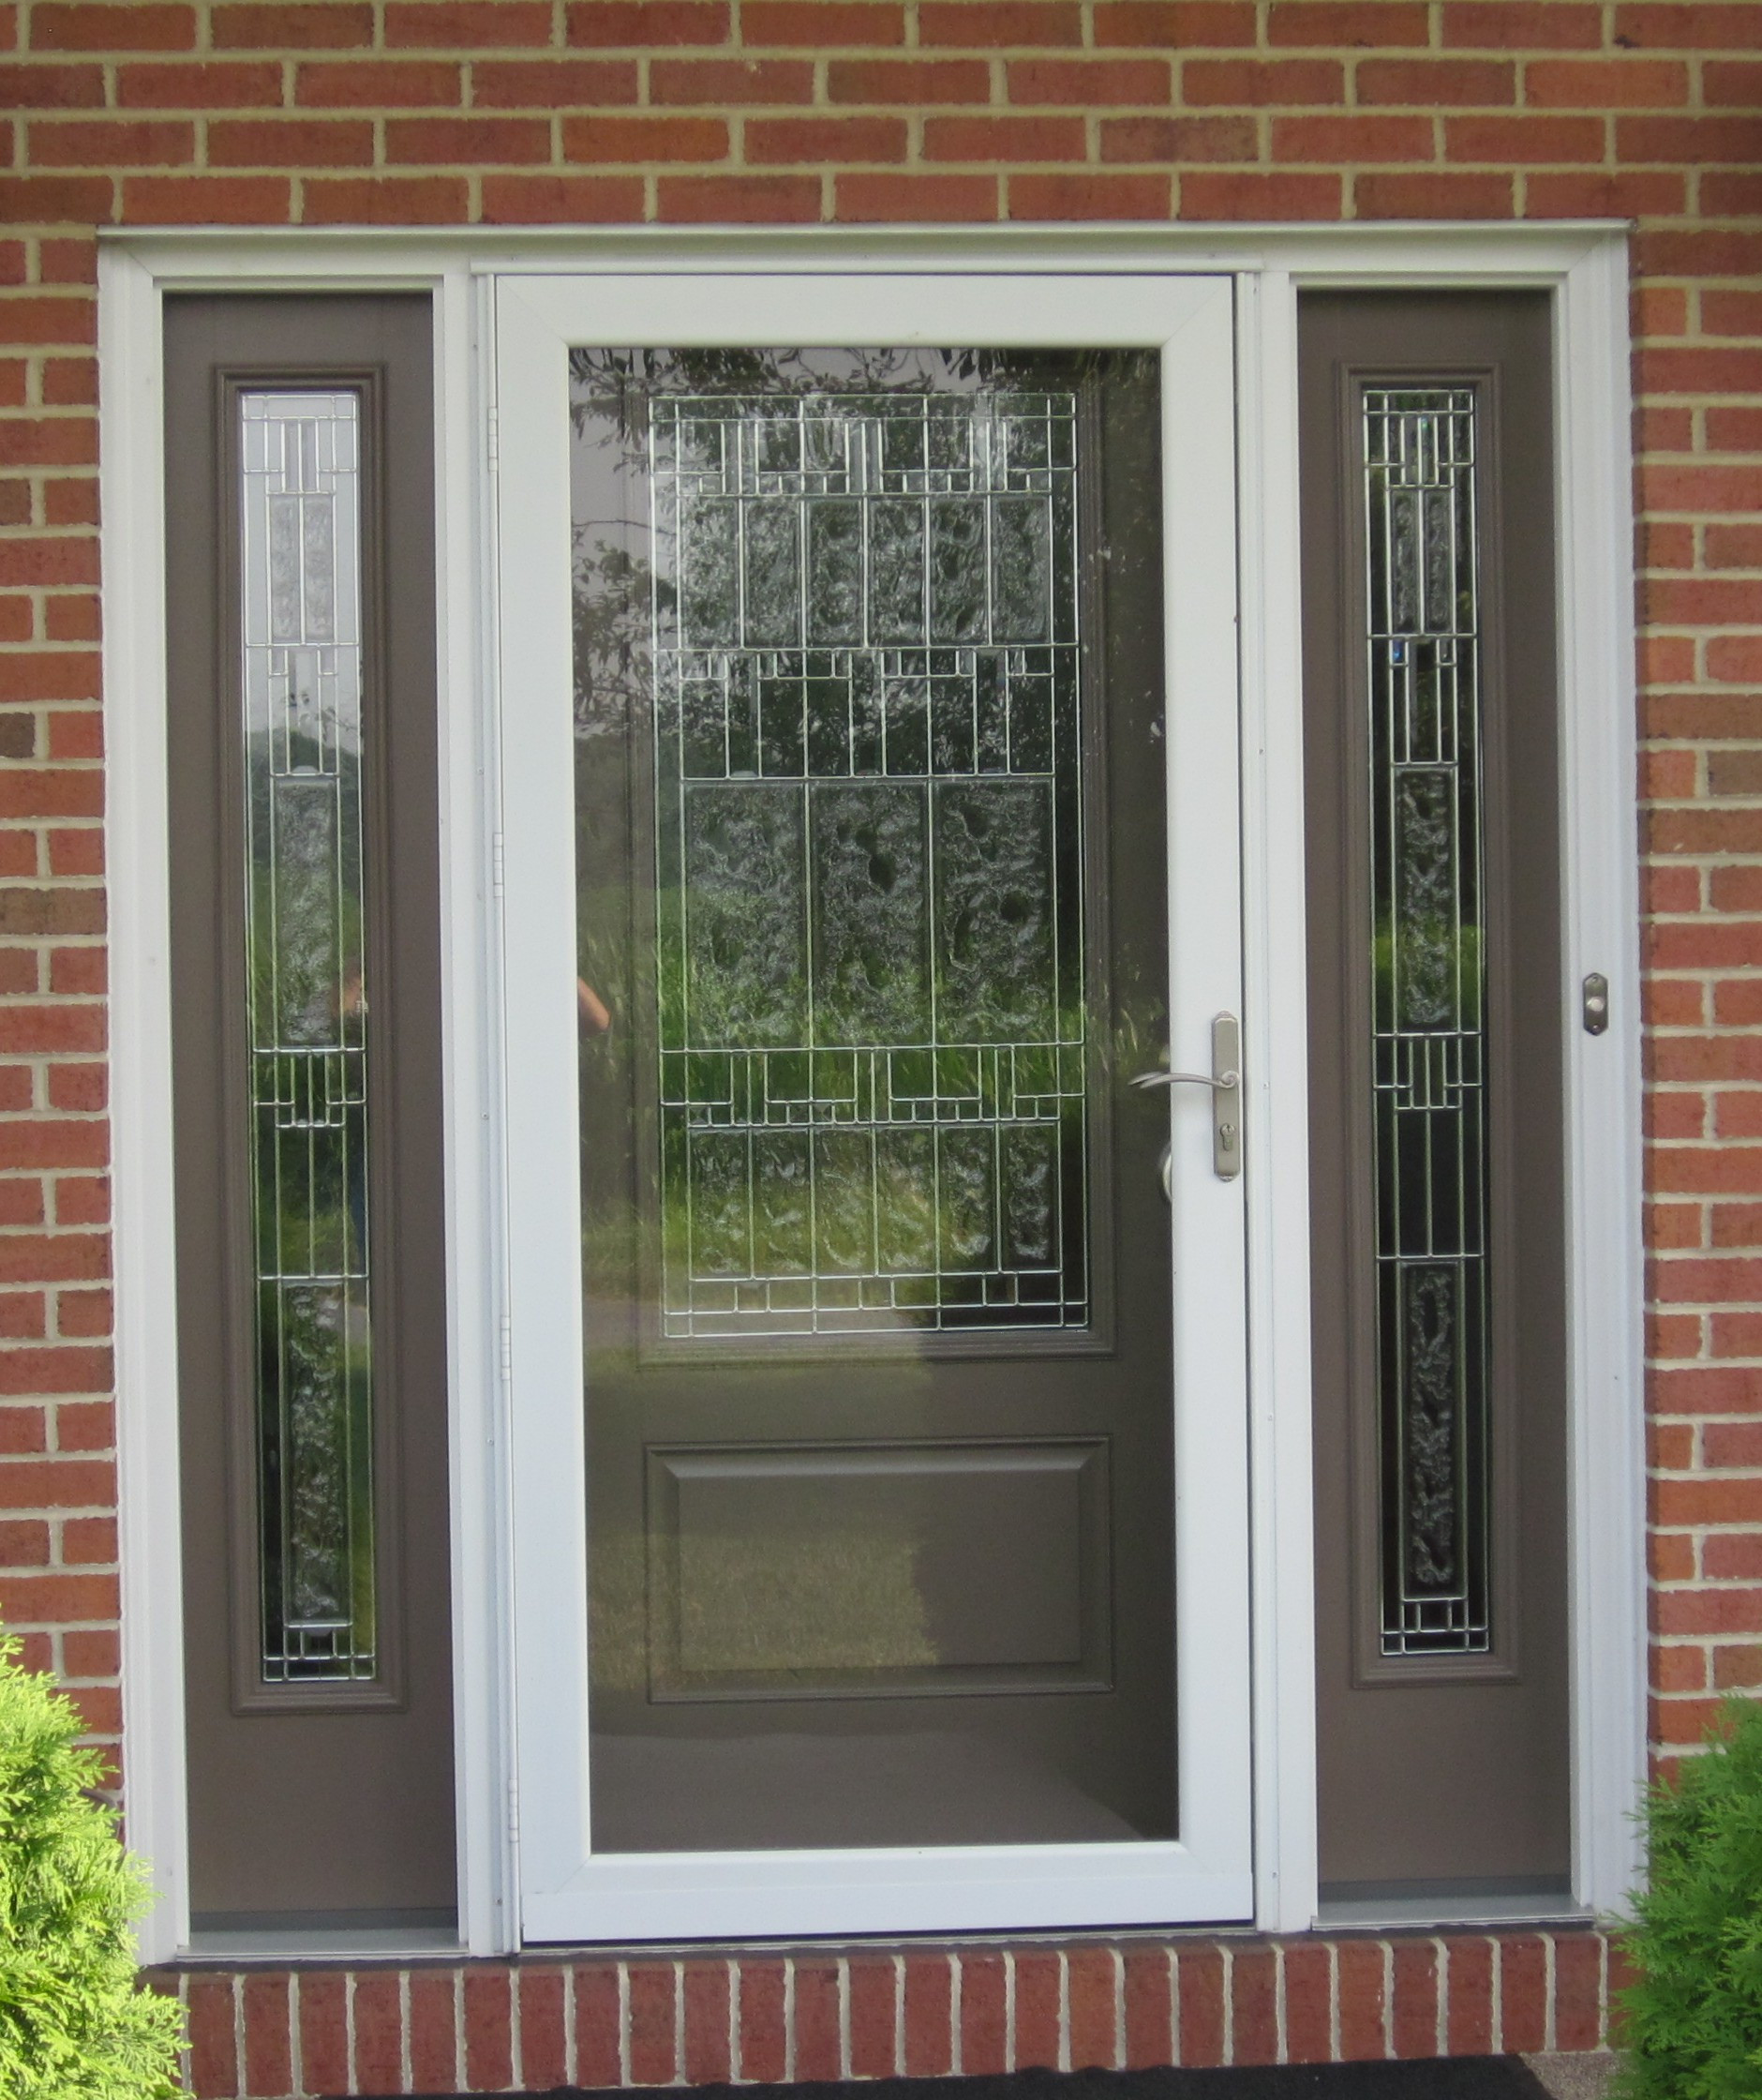 Best ideas about Therma Tru Patio Doors . Save or Pin therma tru interior doors Now.